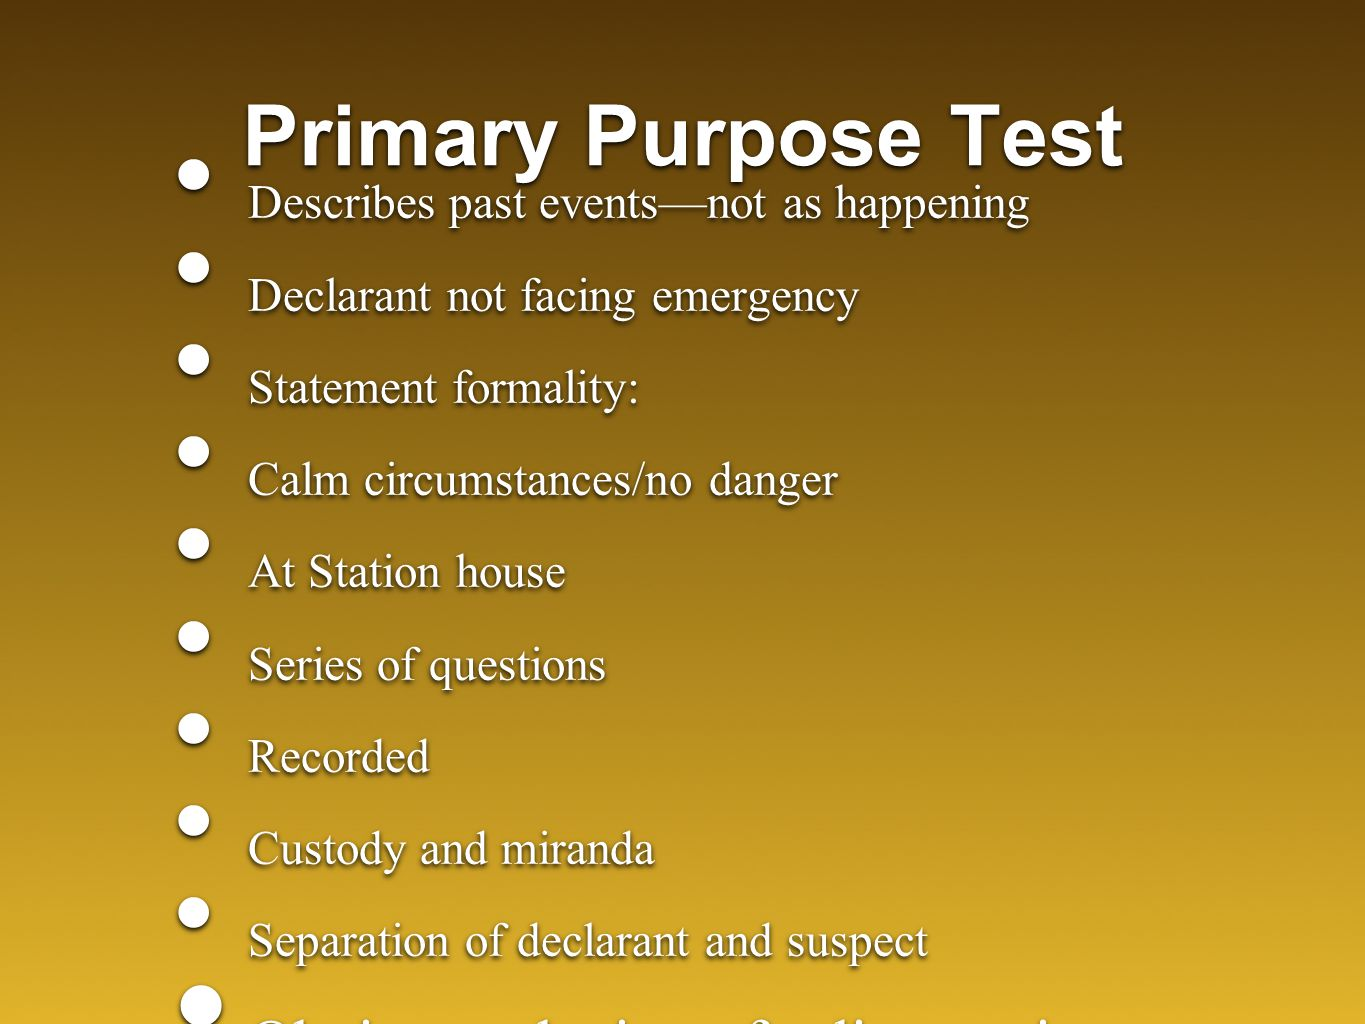 Primary Purpose Test Describes past events—not as happening Declarant not facing emergency Statement formality: Calm circumstances/no danger At Station house Series of questions Recorded Custody and miranda Separation of declarant and suspect Obvious substitute for live testimony Describes past events—not as happening Declarant not facing emergency Statement formality: Calm circumstances/no danger At Station house Series of questions Recorded Custody and miranda Separation of declarant and suspect Obvious substitute for live testimony